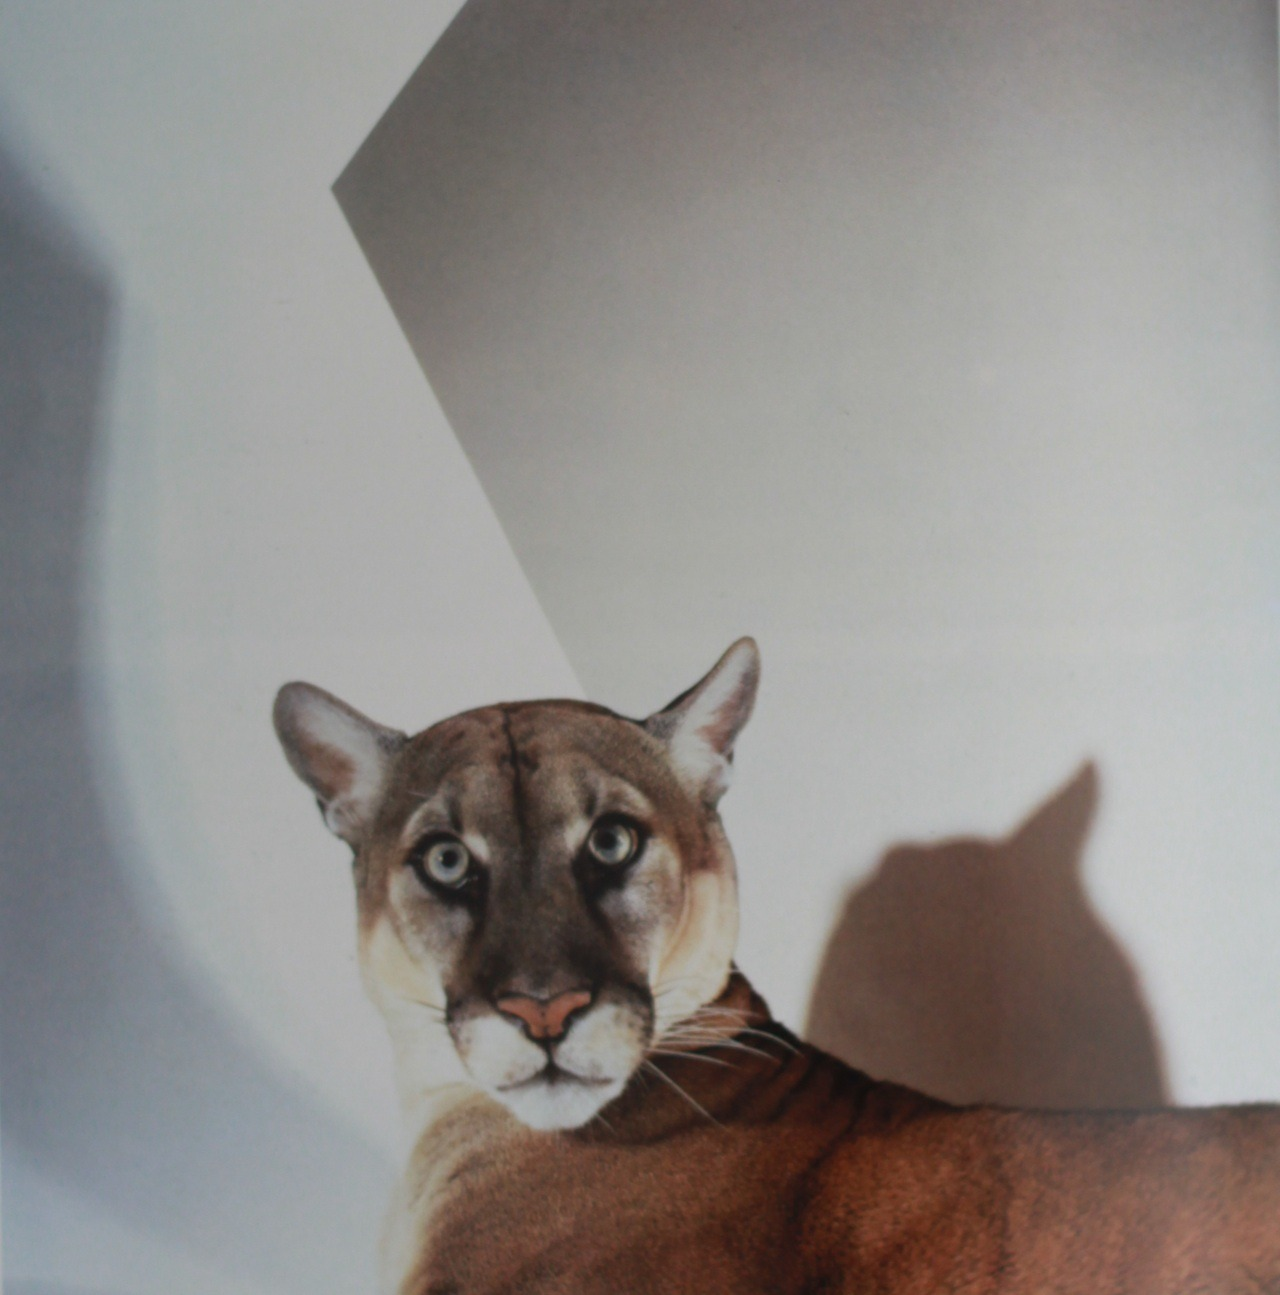 Florida panther by James Balog